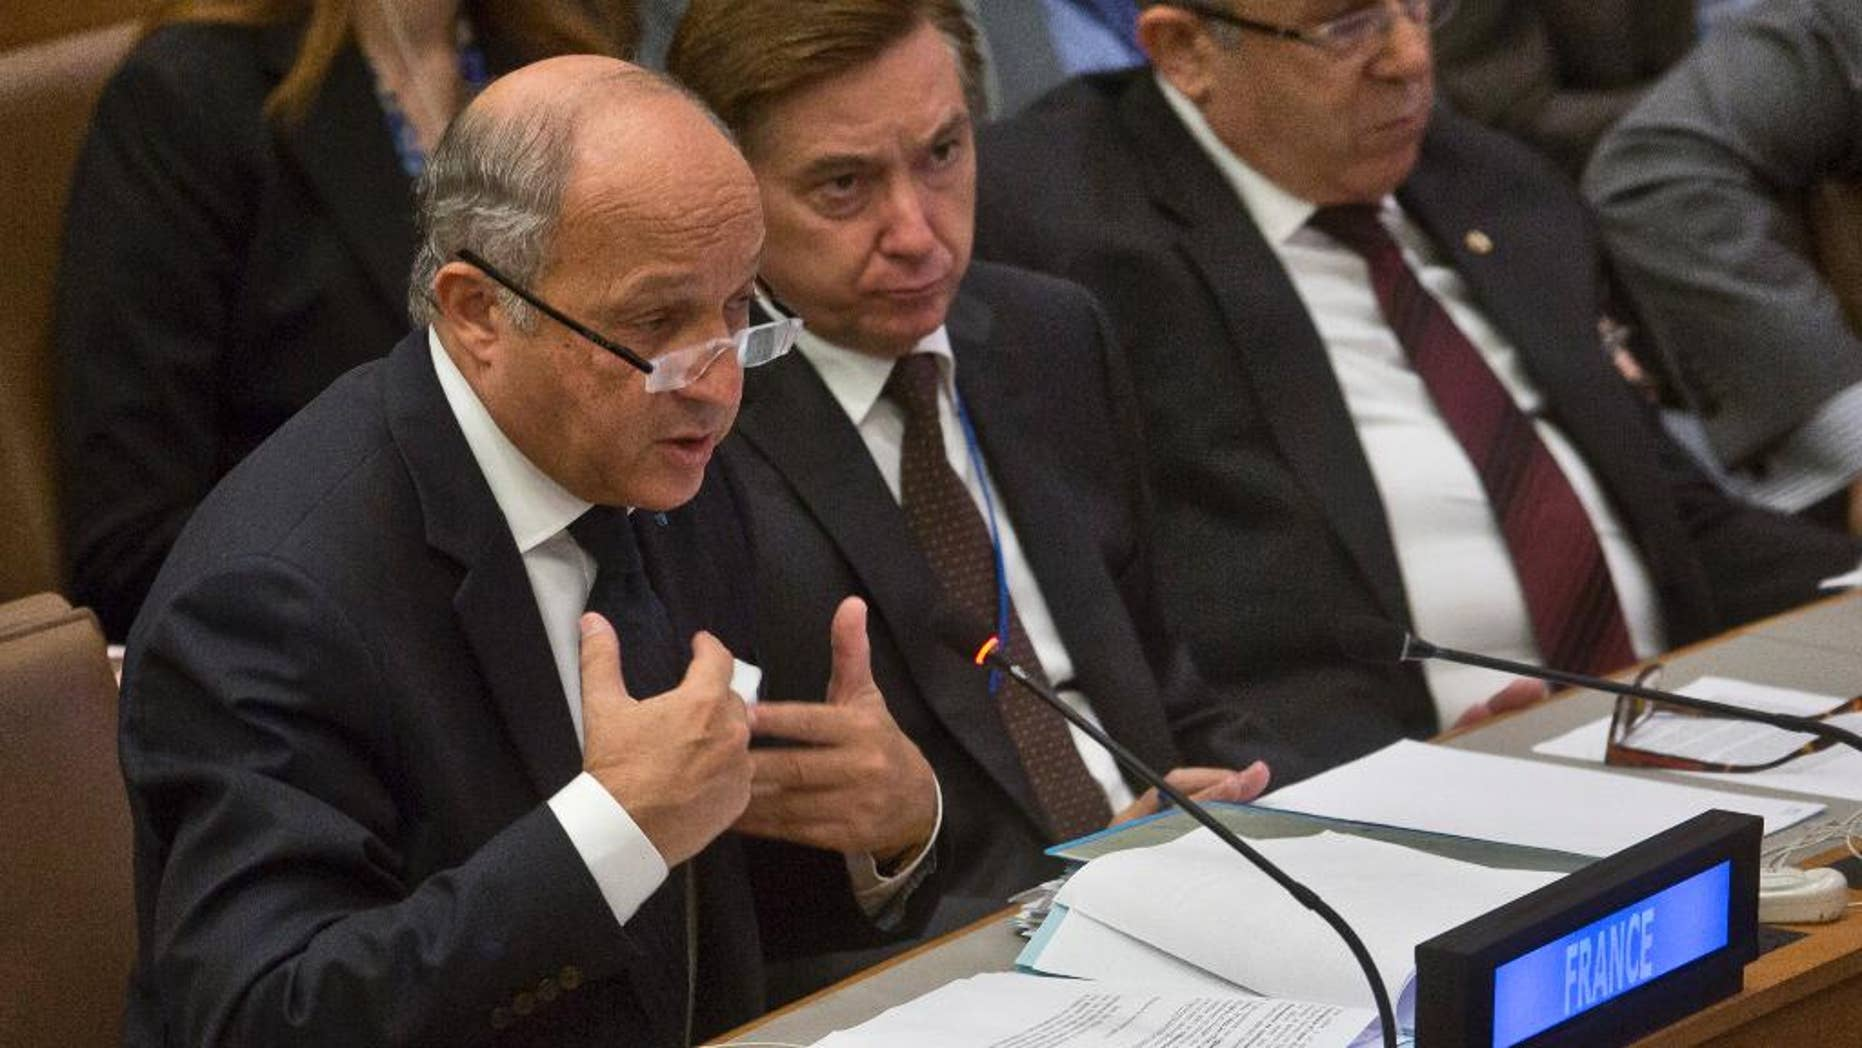 French Foreign Minister Laurent Fabius speaks during a high level meeting on Libya Thursday, Sept. 25, 2014, during the 69th session of the U.N. General Assembly meetings at the United Nations headquarters.  (AP Photo/Bebeto Matthews)